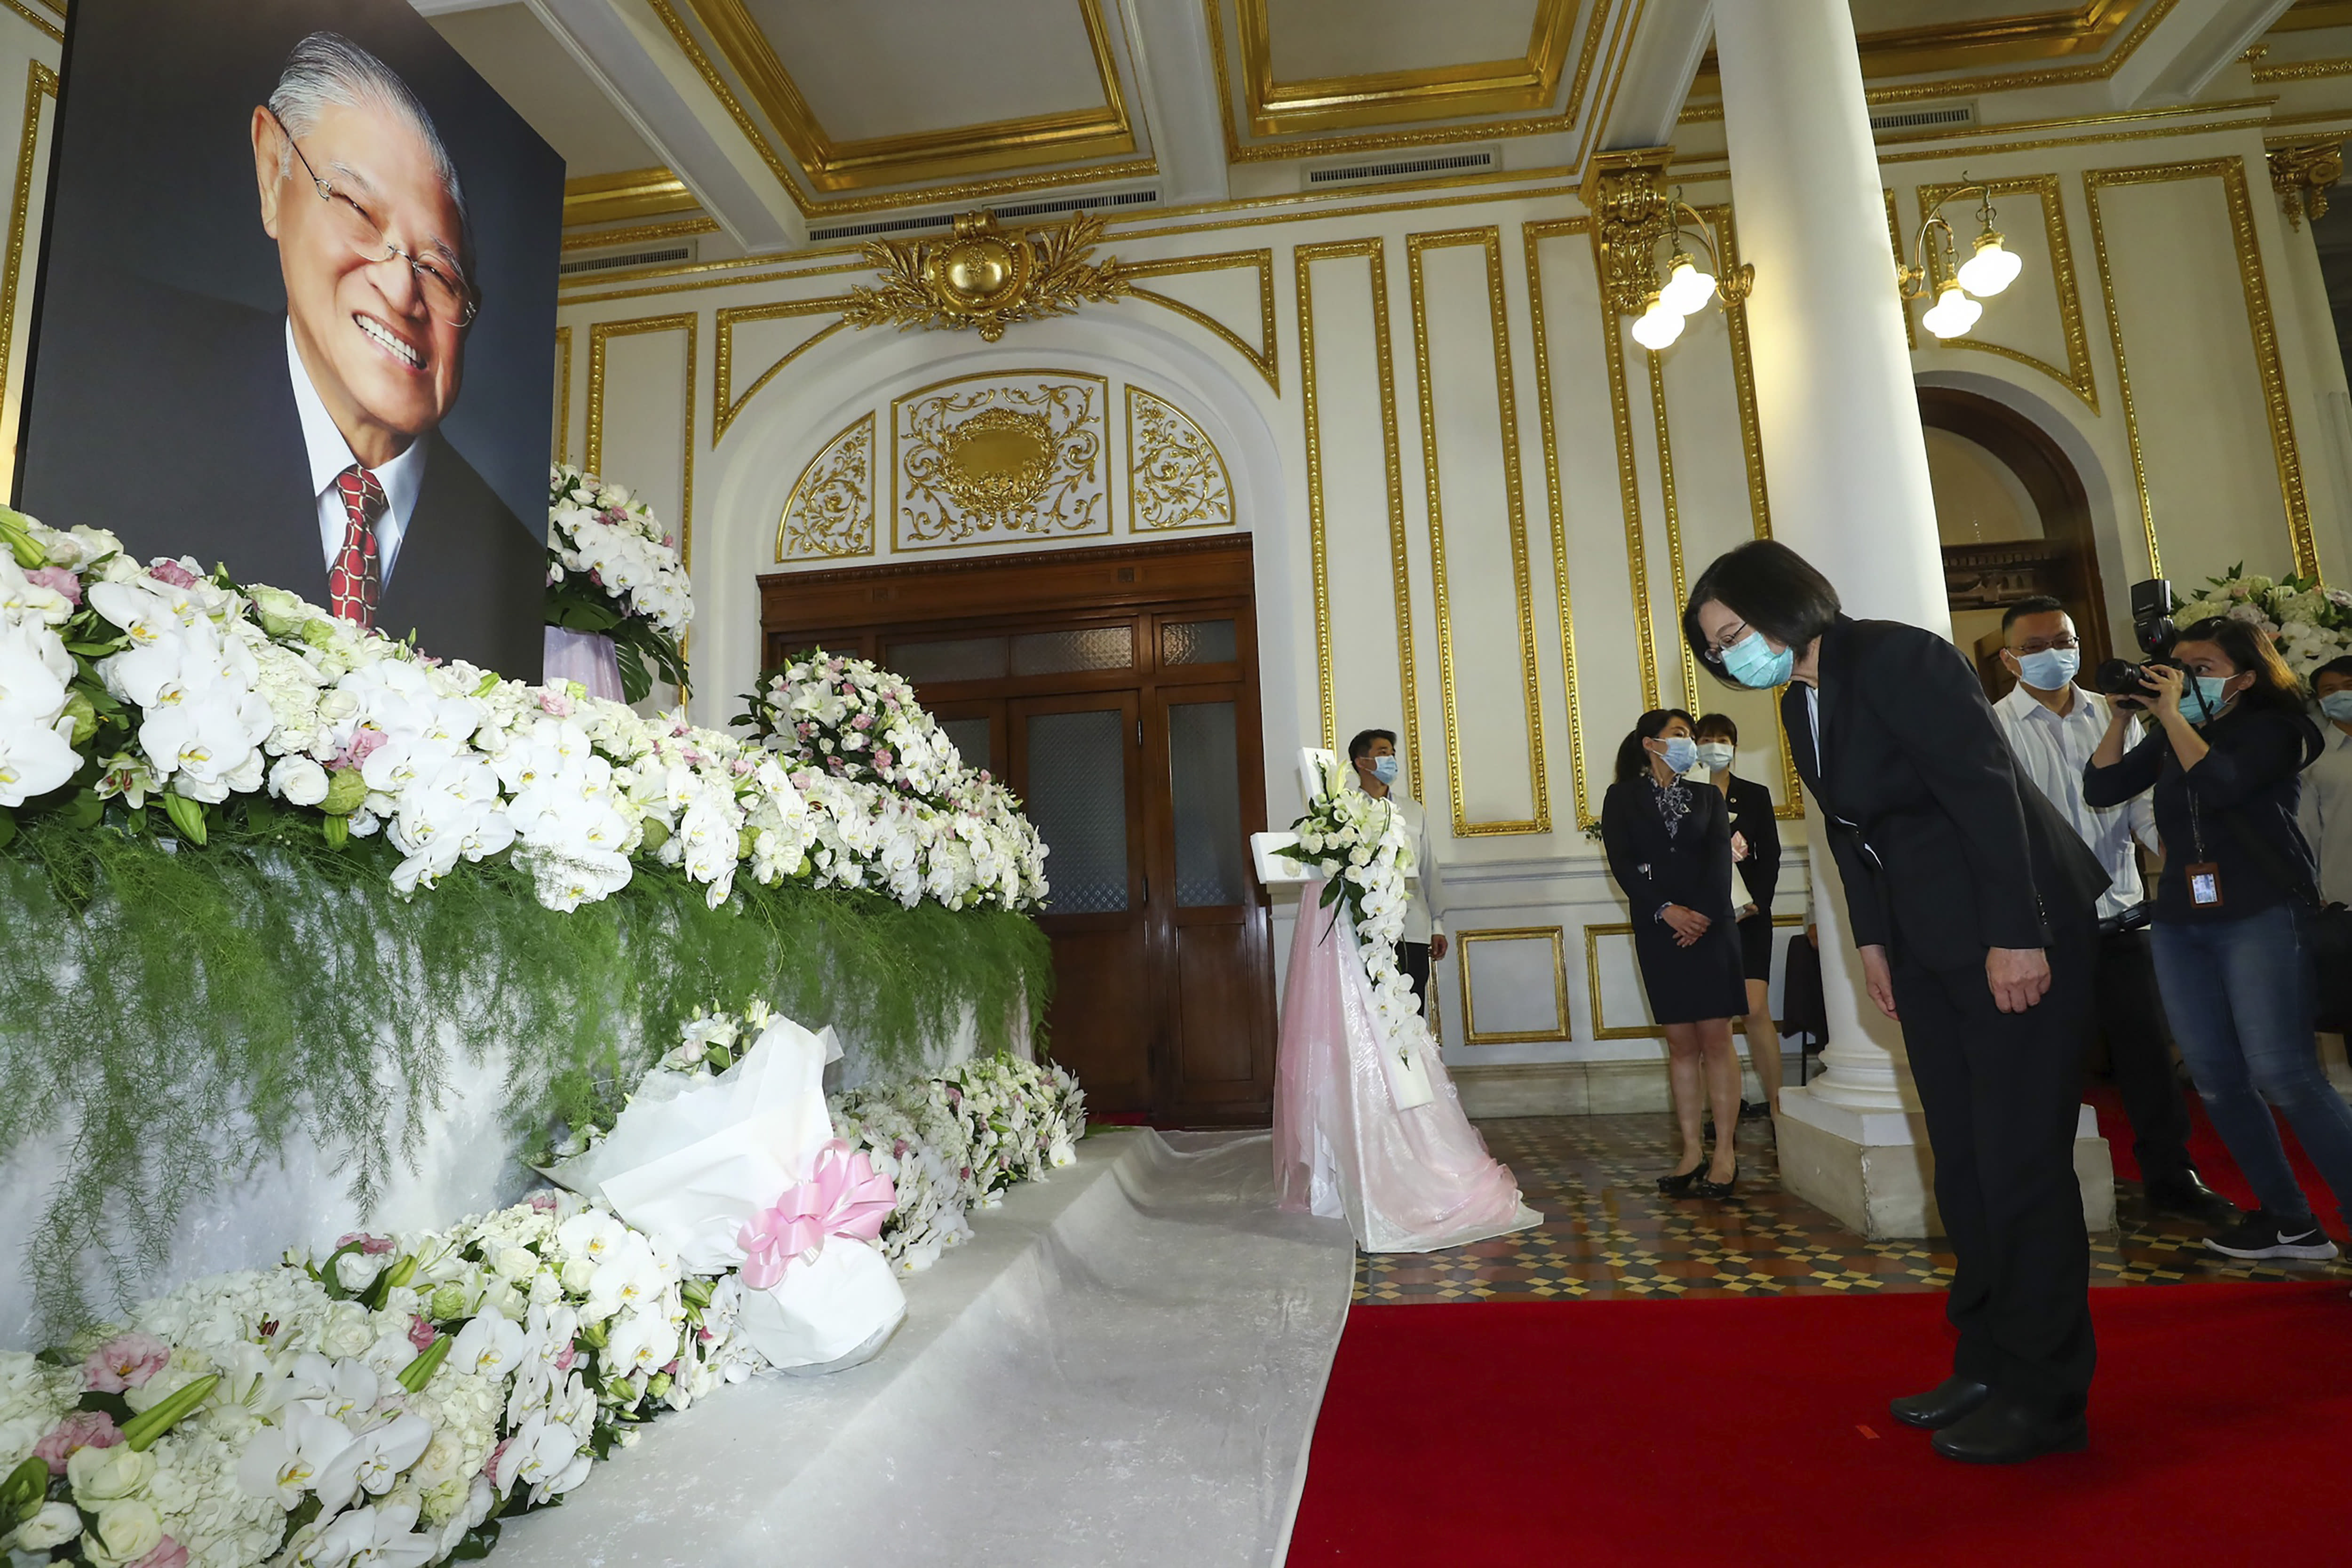 In this photo released by the Taiwan Presidential Office, Taiwan's President Tsai Ing-wen pays her respects at a memorial for former Taiwanese President Lee Teng-hui in Taipei, Taiwan, Saturday, Aug. 1, 2020. Lee, who brought direct elections and other democratic changes to the self-governed island despite missile launches and other fierce saber-rattling by China, died on Thursday at age 97. (Taiwan Presidential Office via AP)